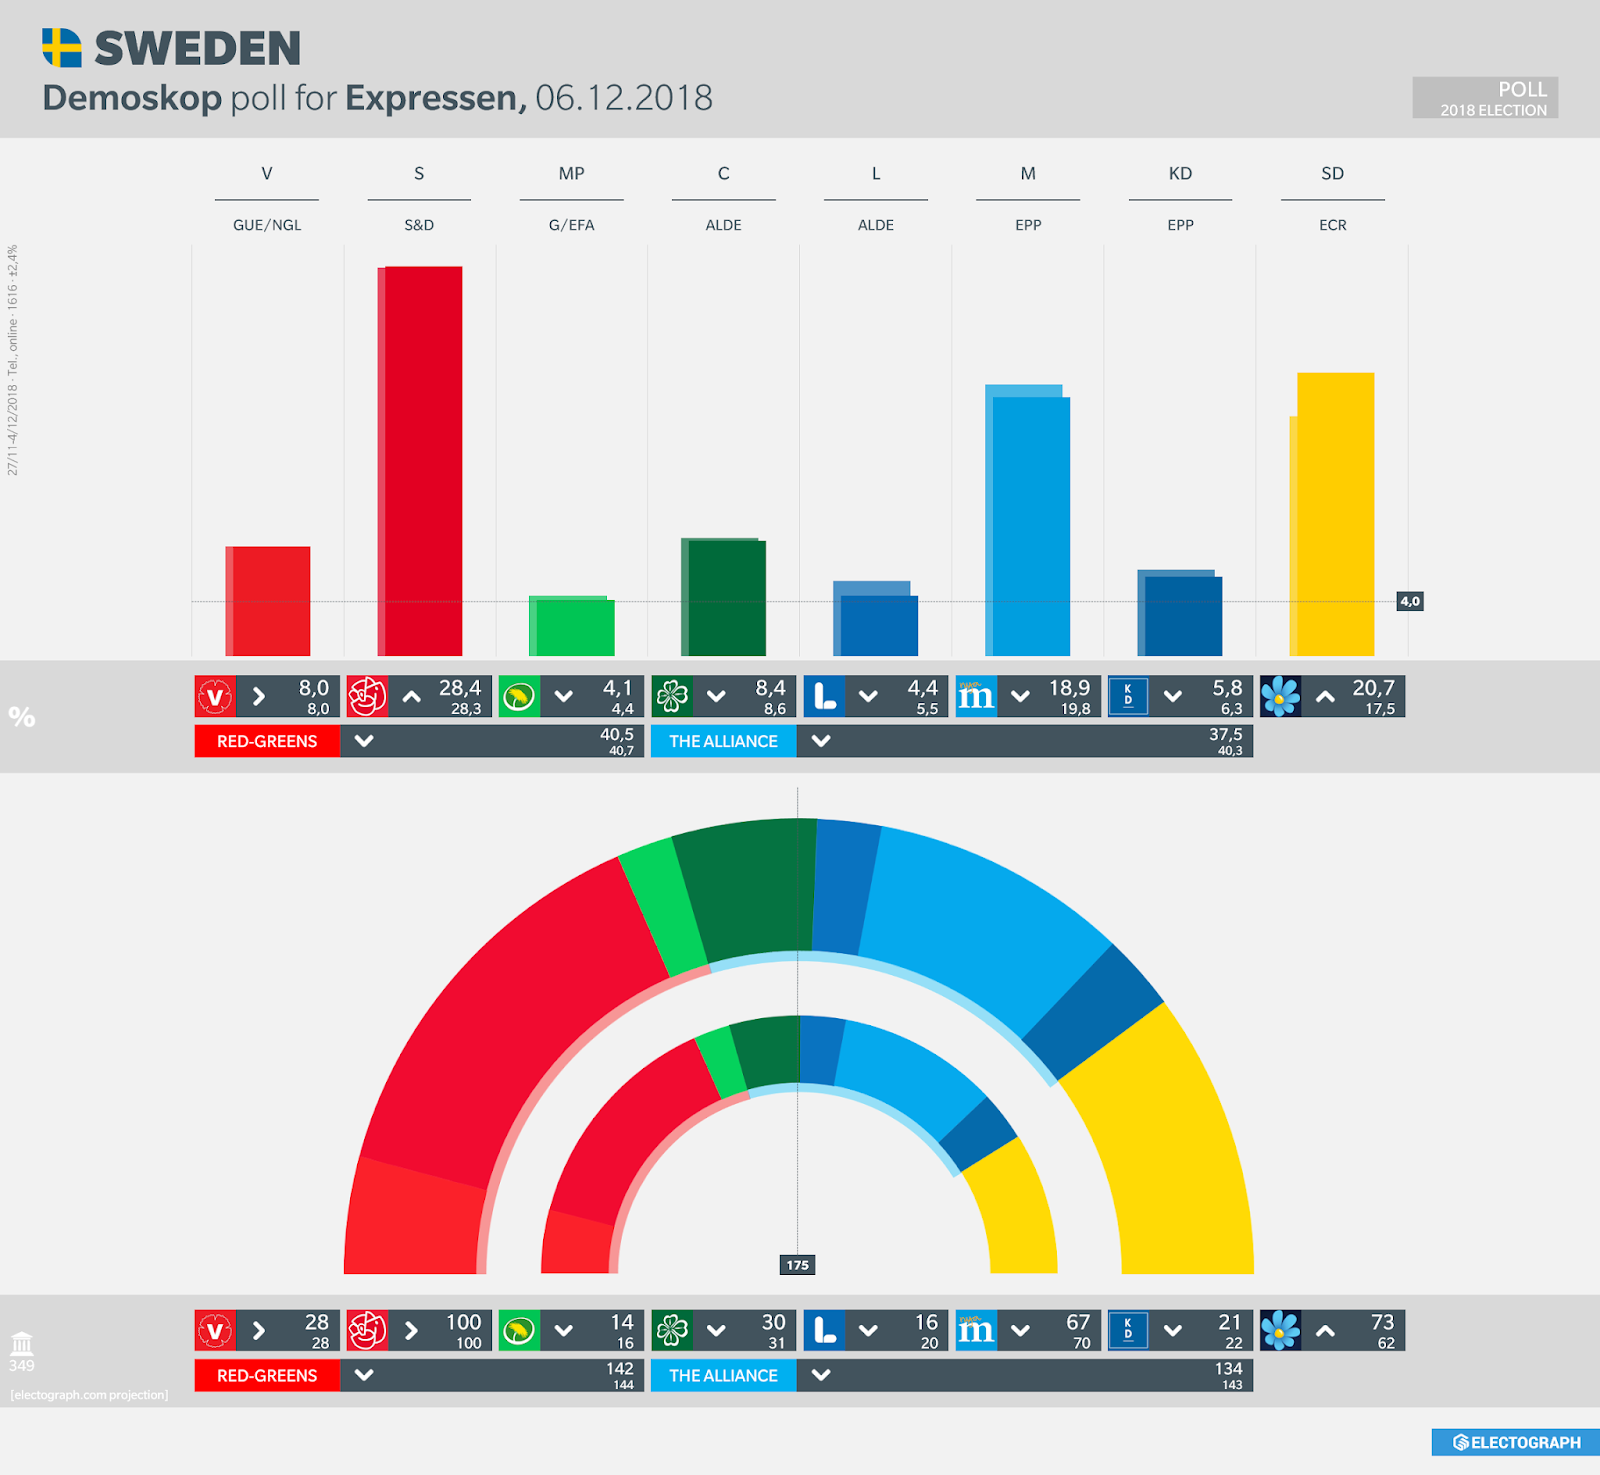 SWEDEN: Demoskop poll chart for Expressen, 6 December 2018